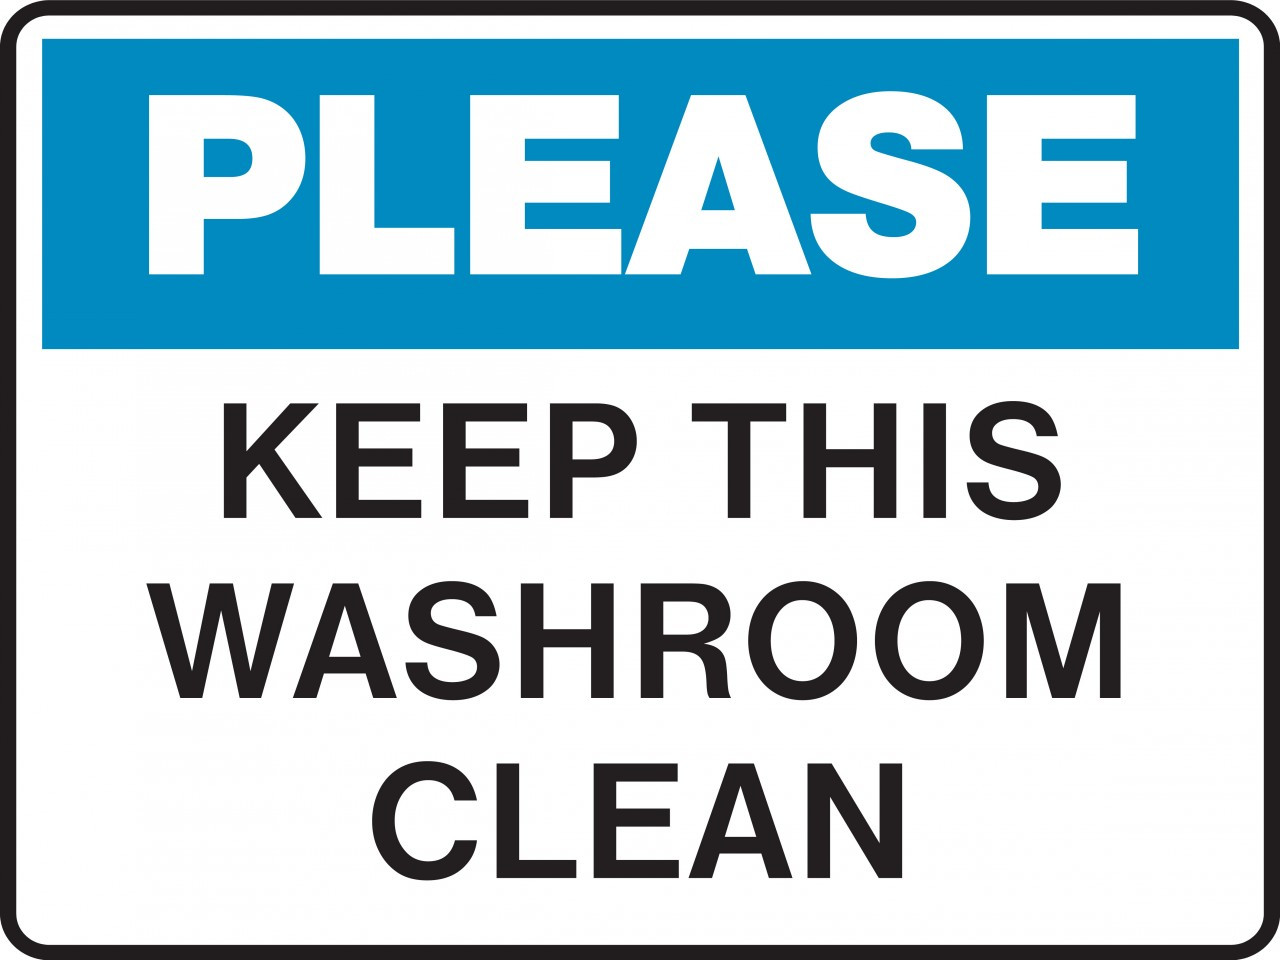 Please flush toilet sign quotes - Housekeeping Sign Please Keep This Washroom Clean